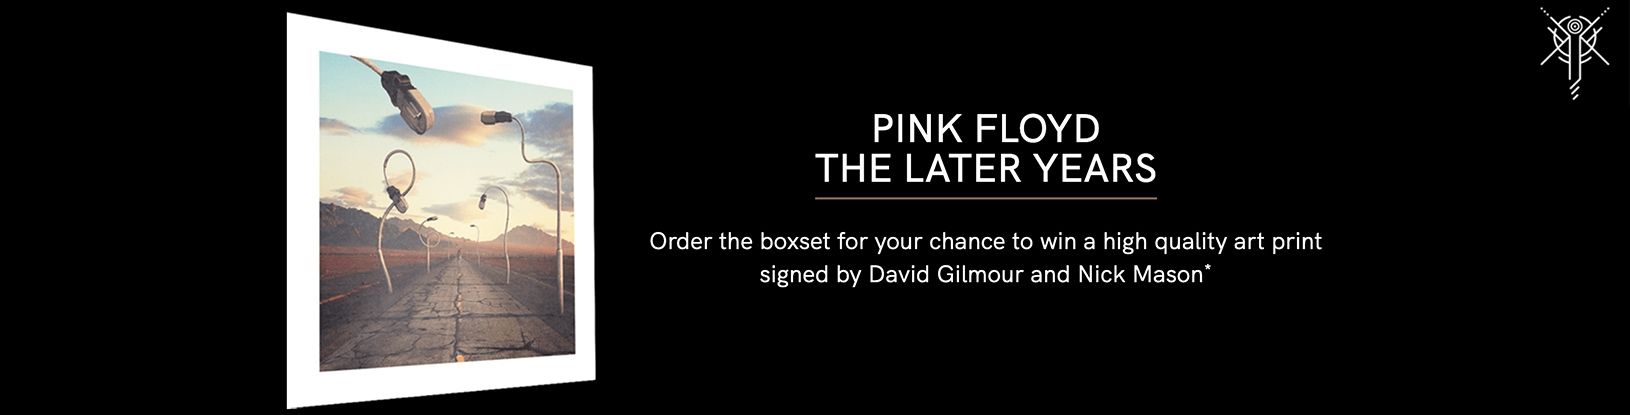 Pink Floyd the later years - Order the boxset for the chance to win a Signed Art print of The Later years